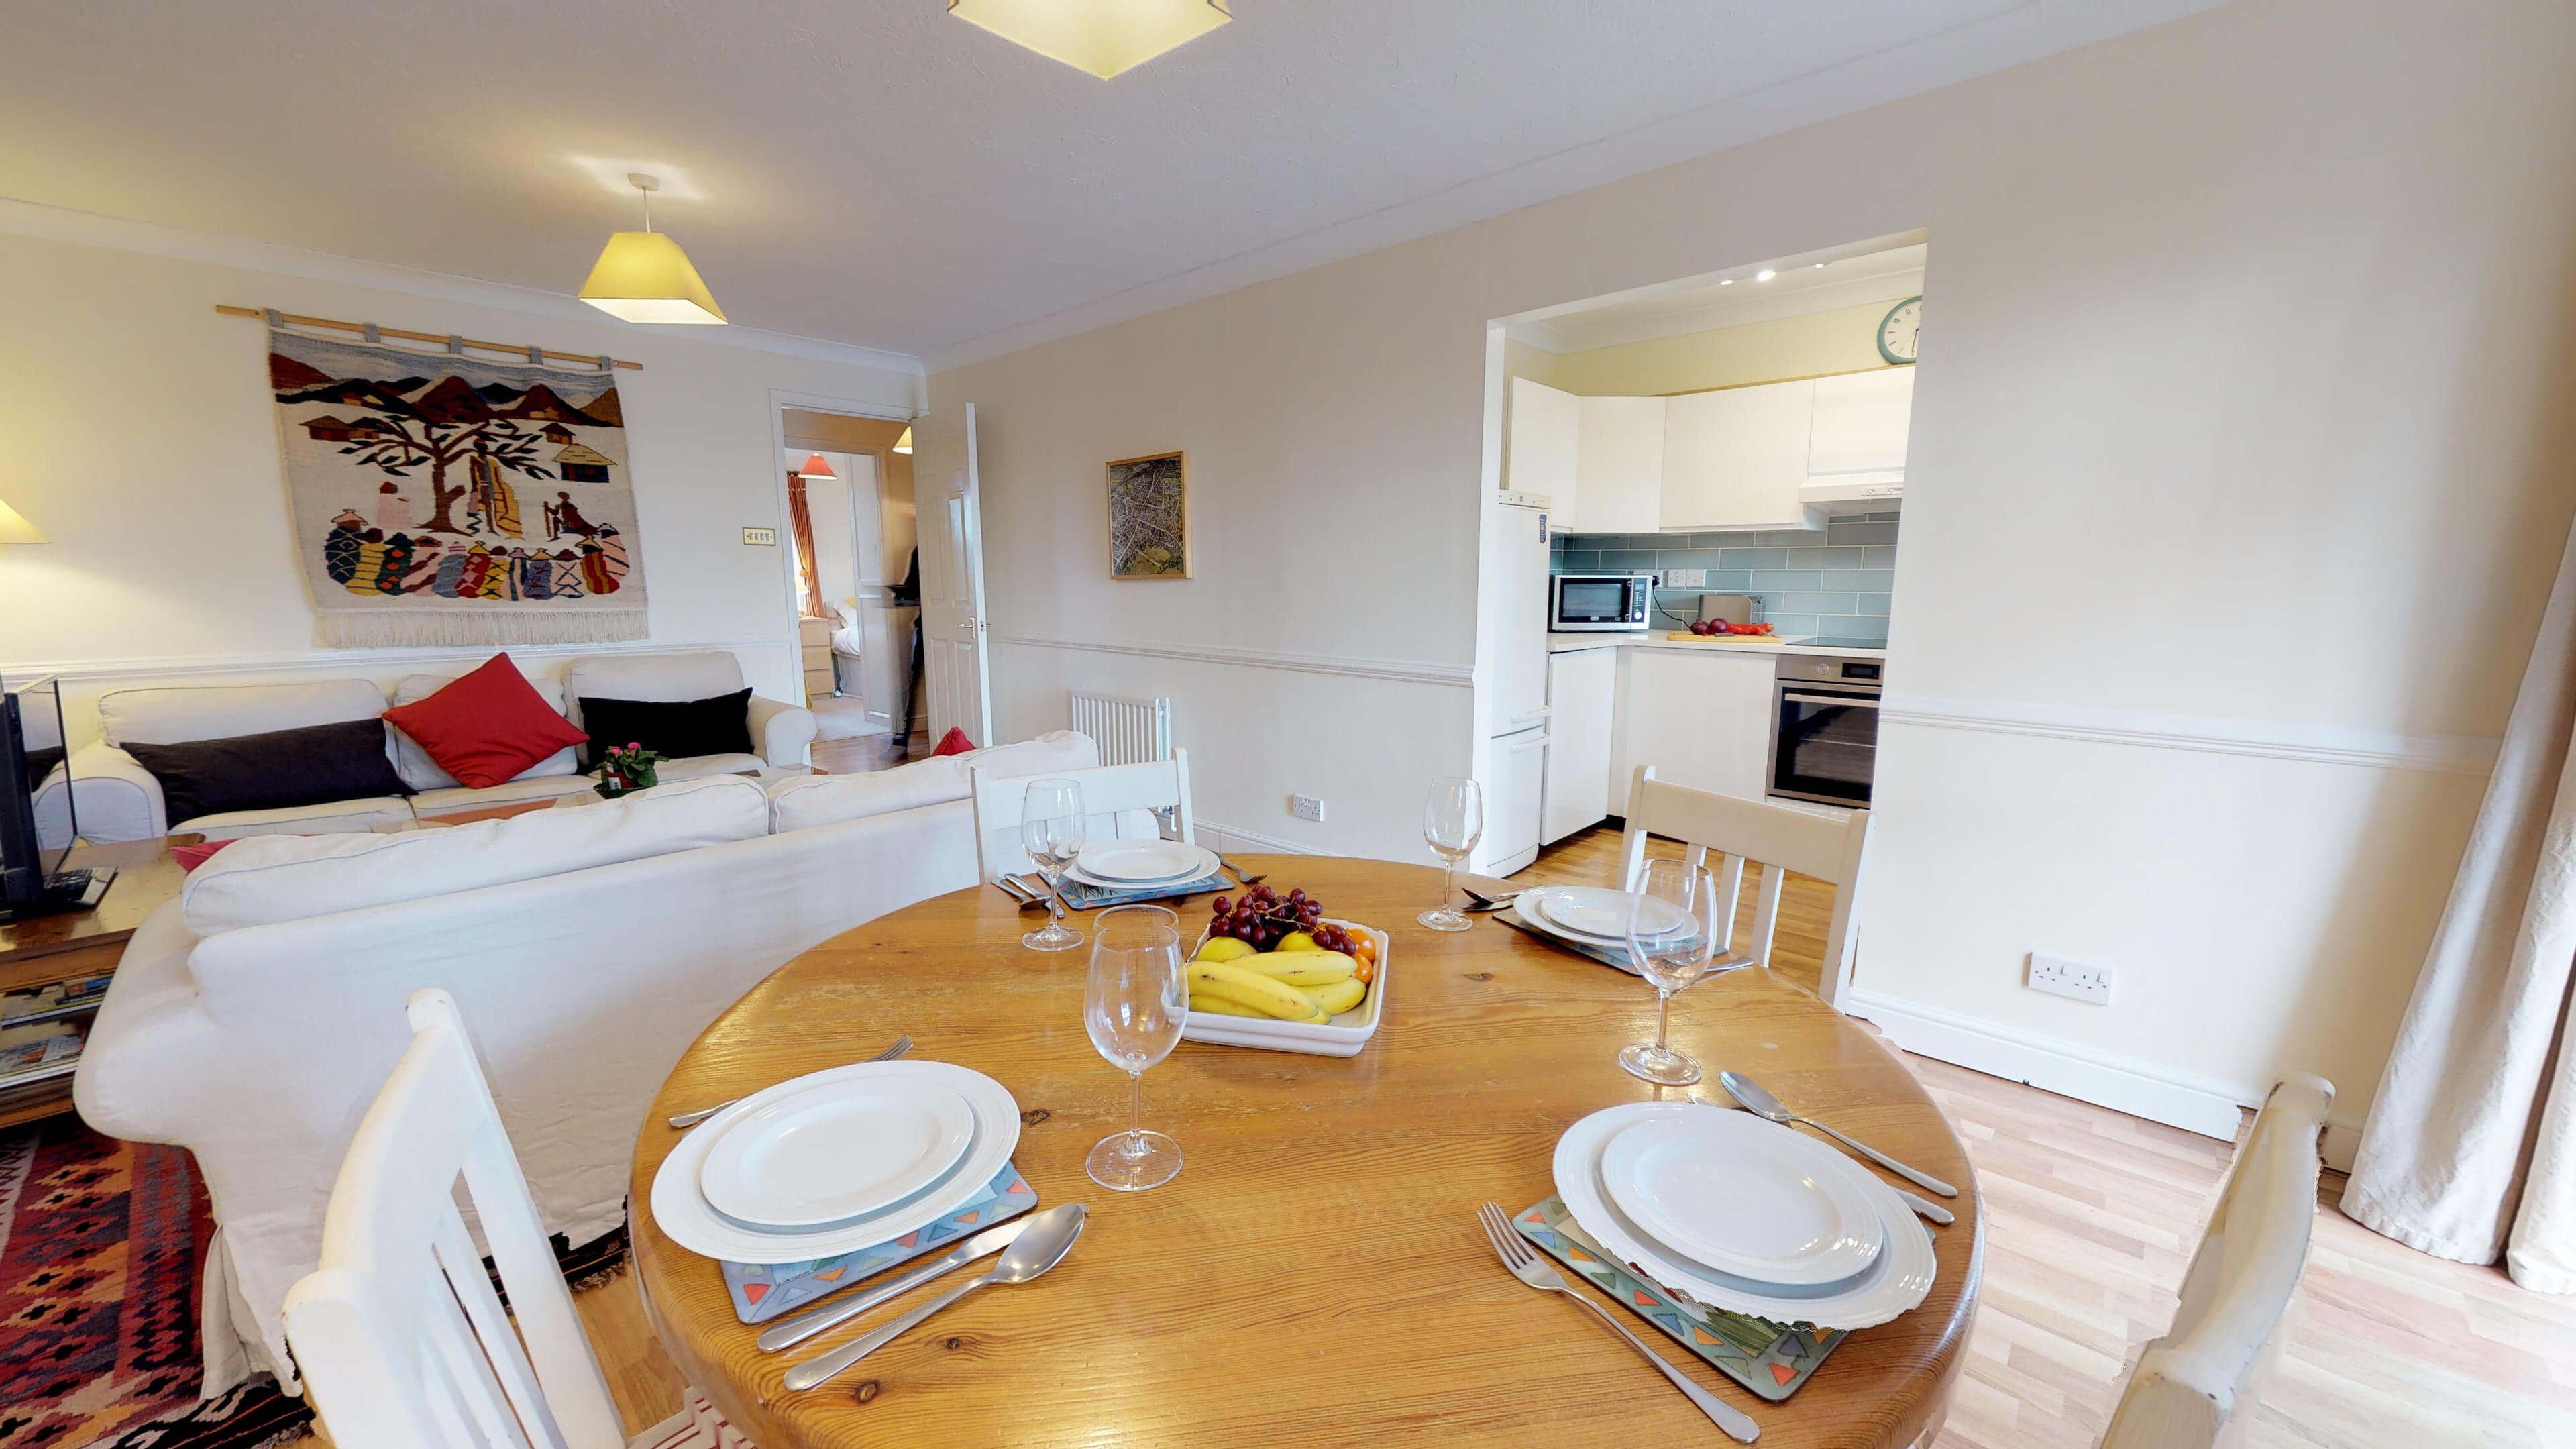 Millbank Oxford City Centre Short Stay Apartment Sleeps 4 Kitchen